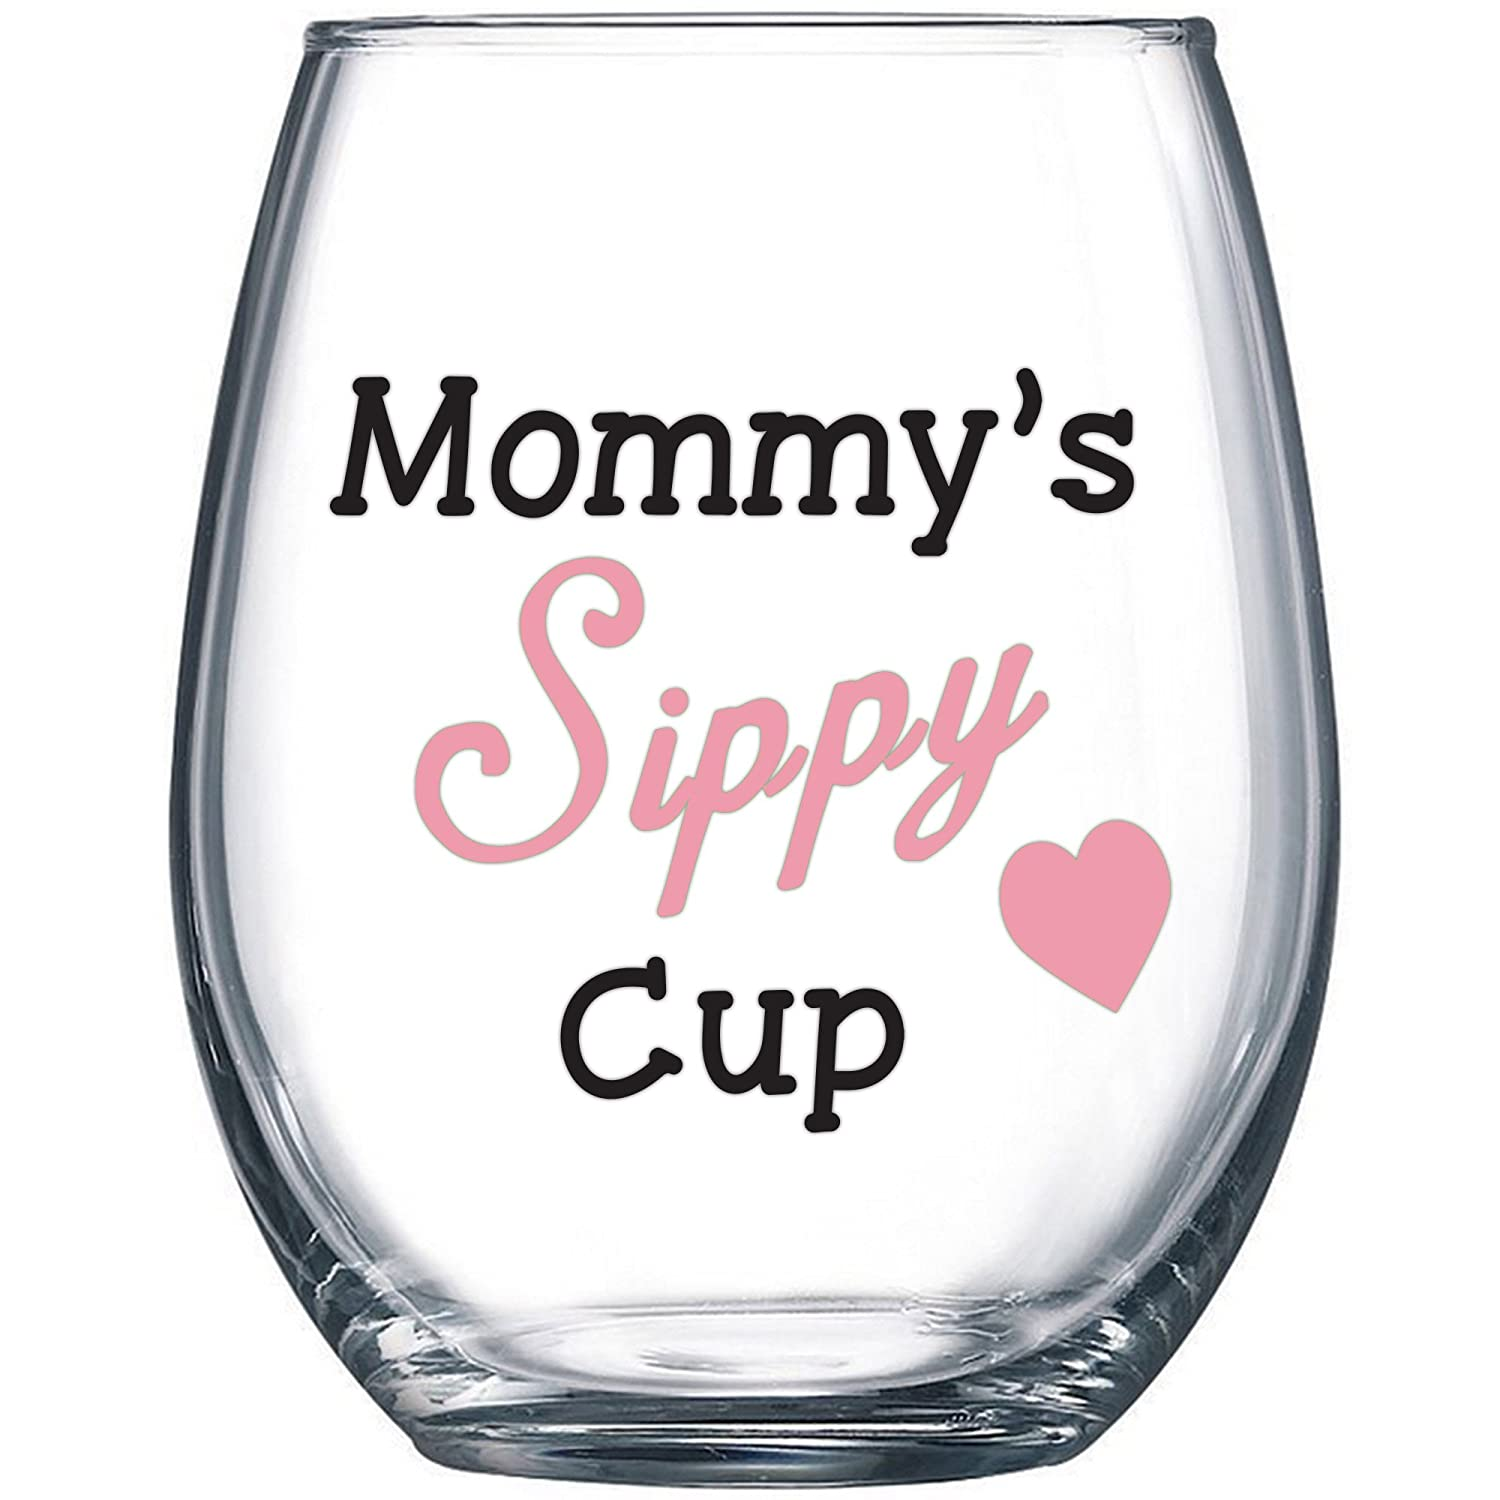 f2aea258a82 Amazon.com | Mommy's Sippy Cup - Funny Wine Glass 15oz - Mother's Day Gift  for Mom, Gift Idea for Her, Birthday Gift for Mom - Evening Mug: Wine  Glasses